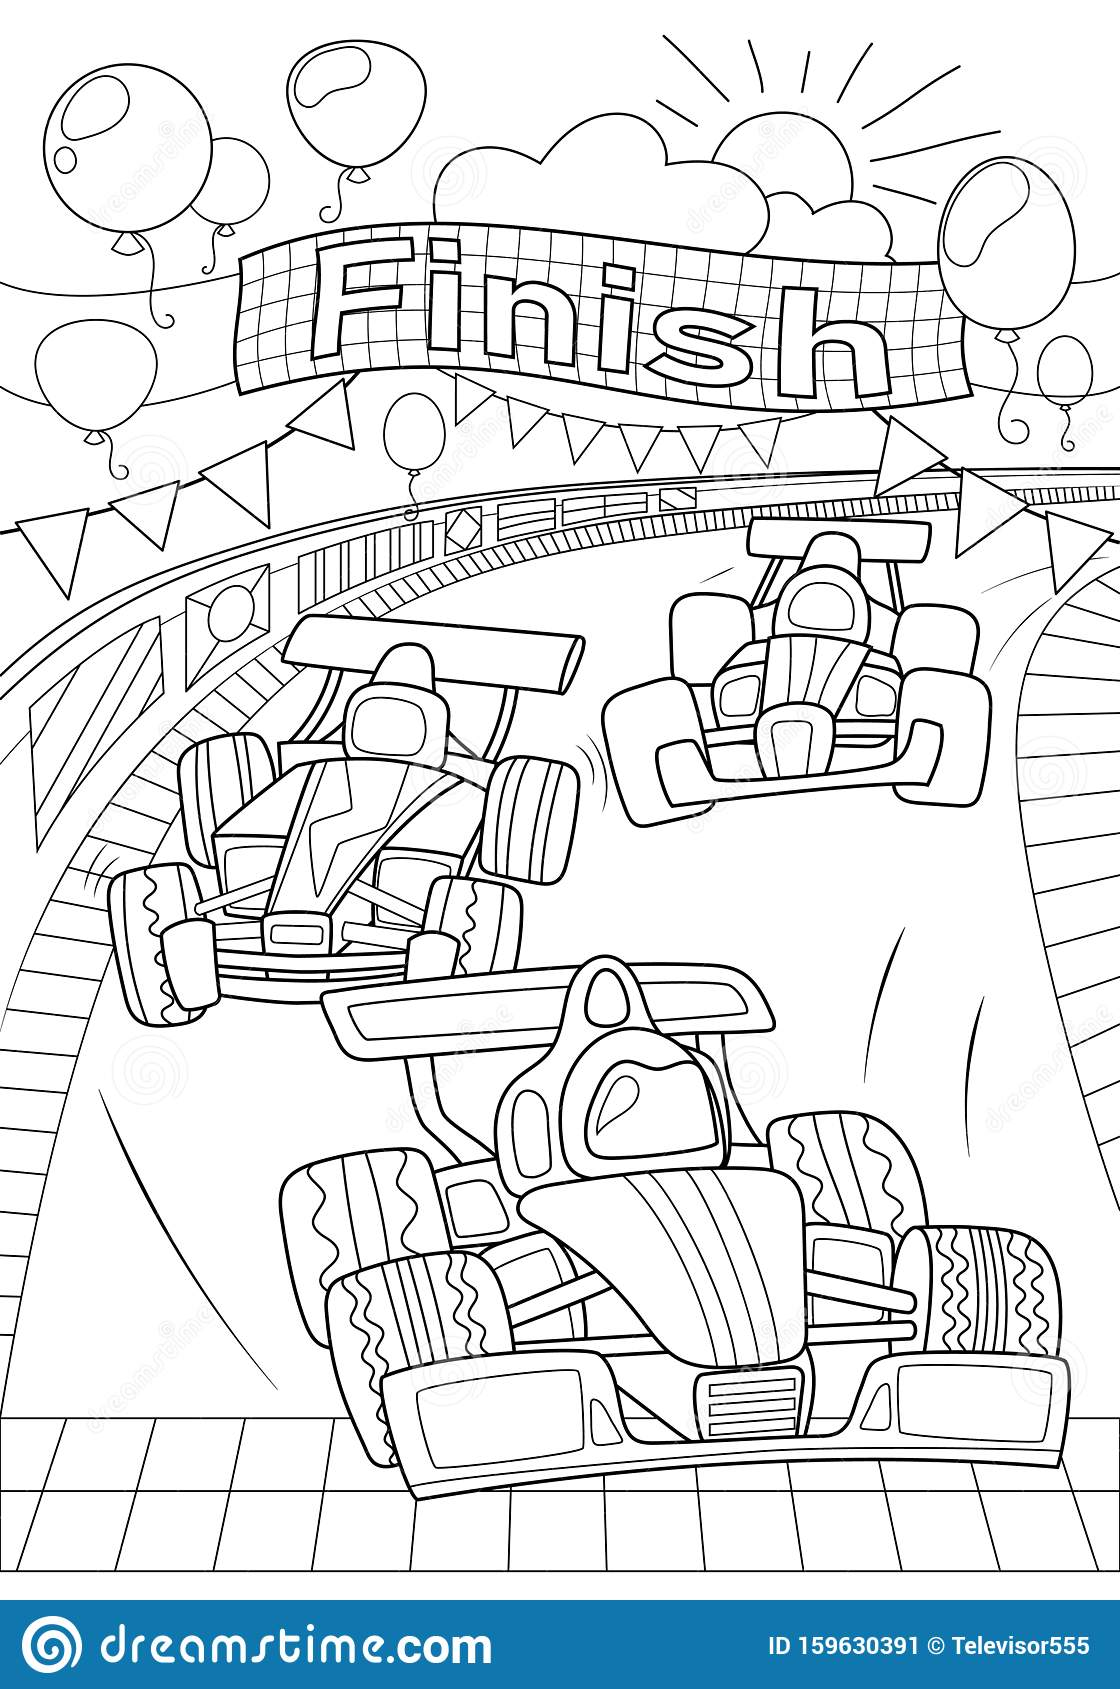 Car Race Coloring Page Formula 1 Black Line Vector Illustration On White Background Speed Car On Finish Racing Car Stock Vector Illustration Of Line Nursery 159630391